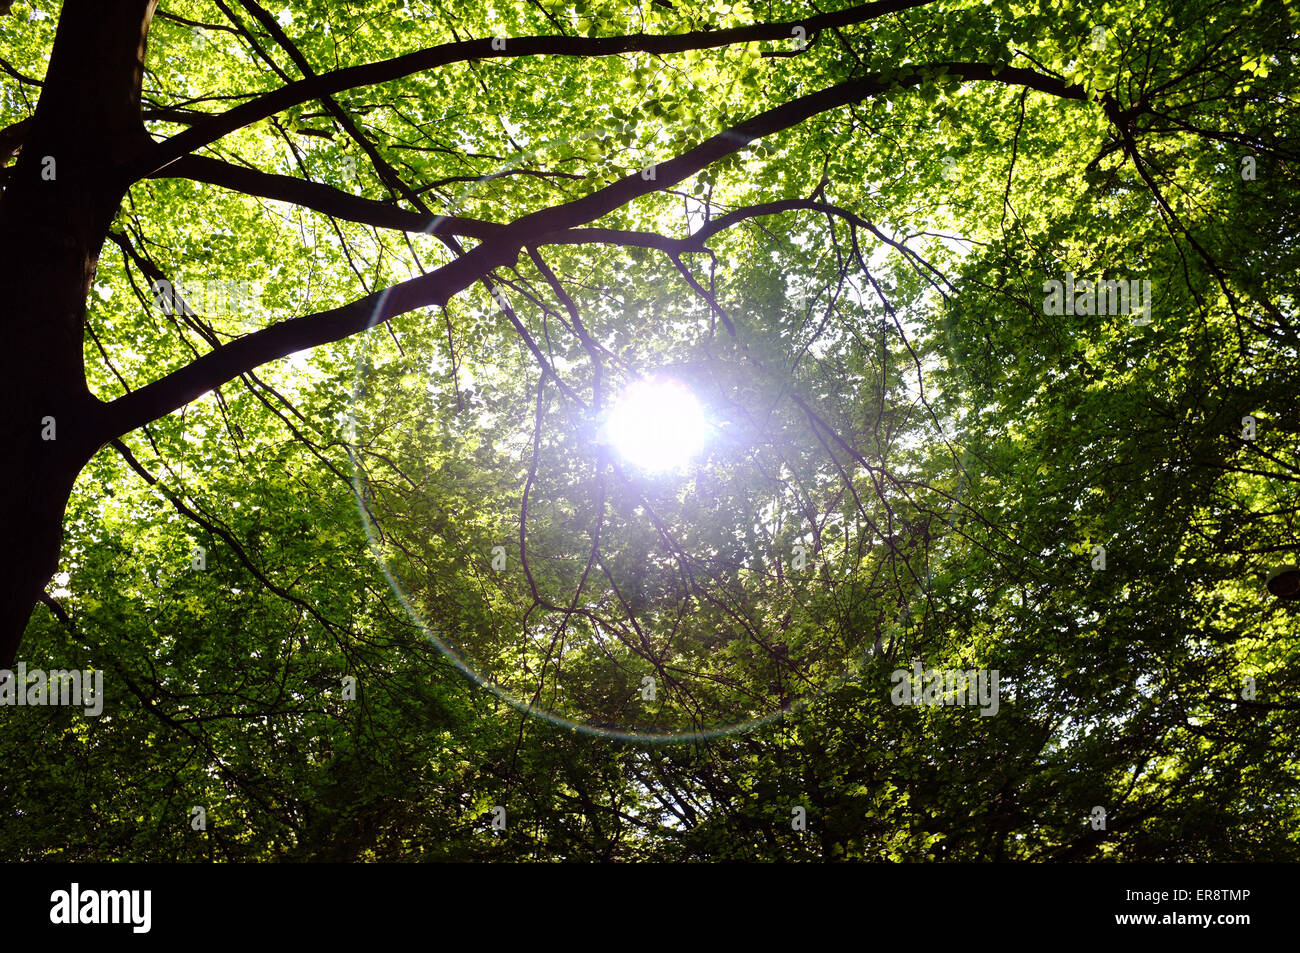 The sun creates a halo flare through the canopy of a forest in Bristol. - Stock Image